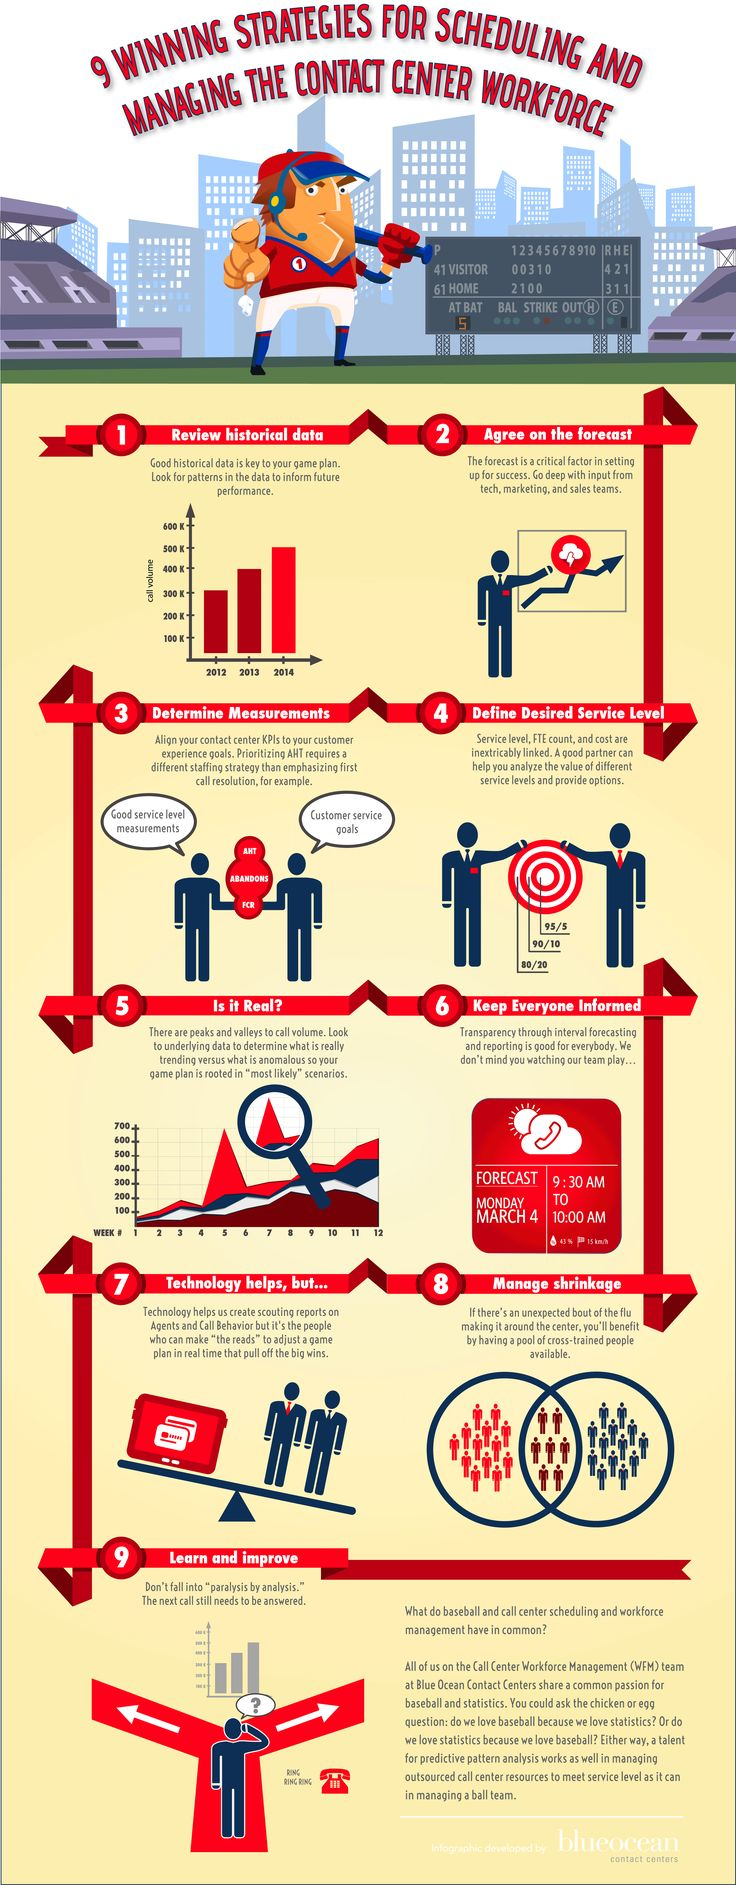 How to Turn Contact Center Workforce Management into Champions